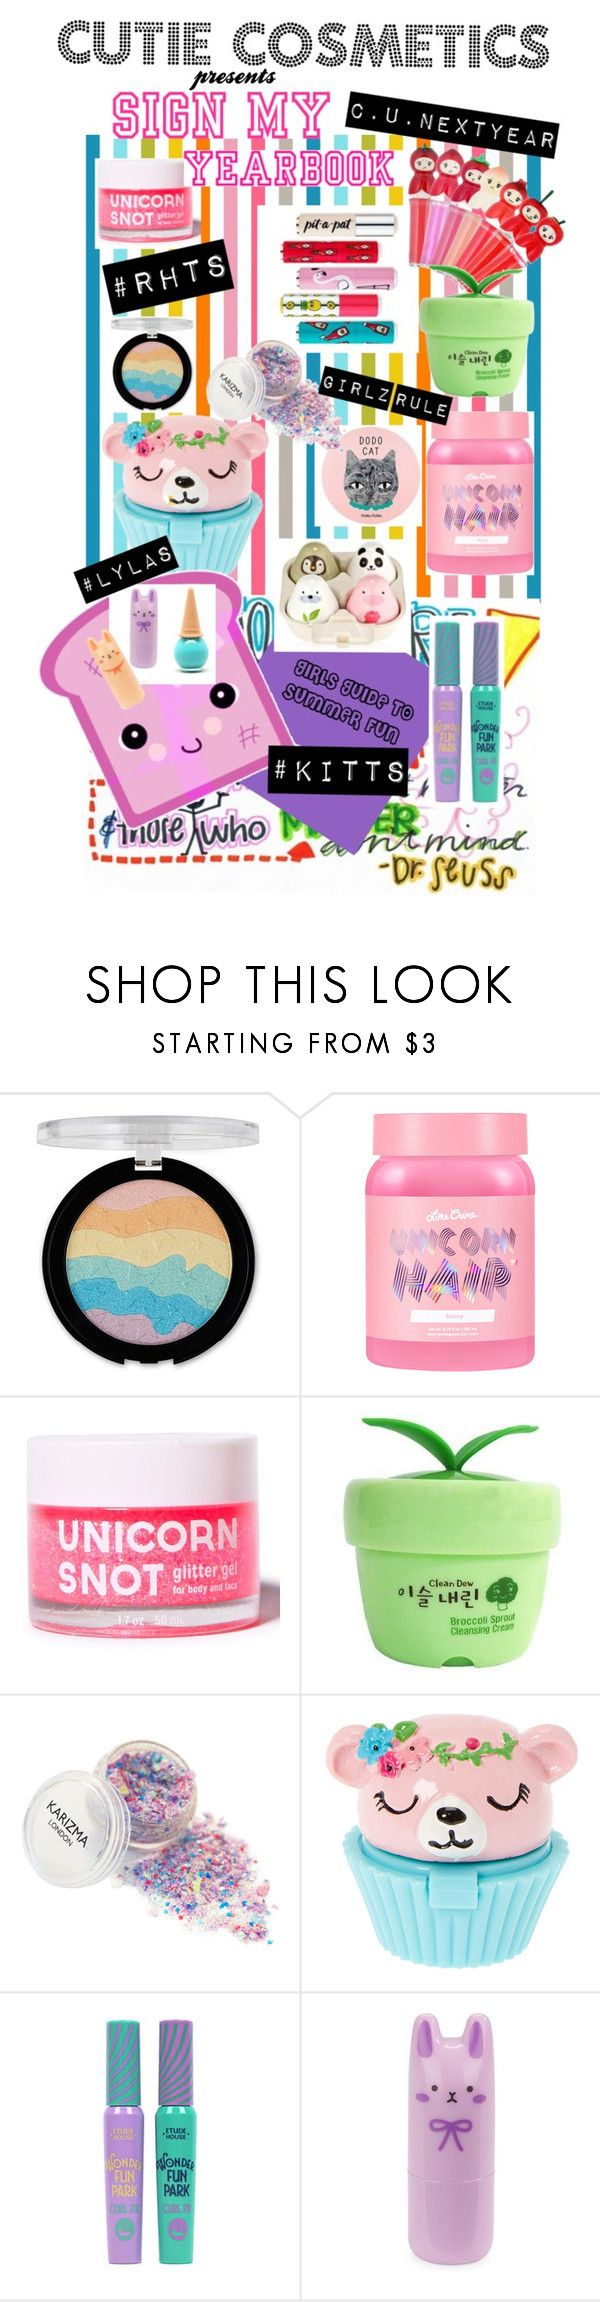 """""""Sign My Yearbook"""" by jennygirlgainer ❤ liked on Polyvore featuring beauty, Etude House, Forever 21, Lime Crime, FCTRY, Holika Holika, TONYMOLY, claire's, Toast and Tony Moly"""